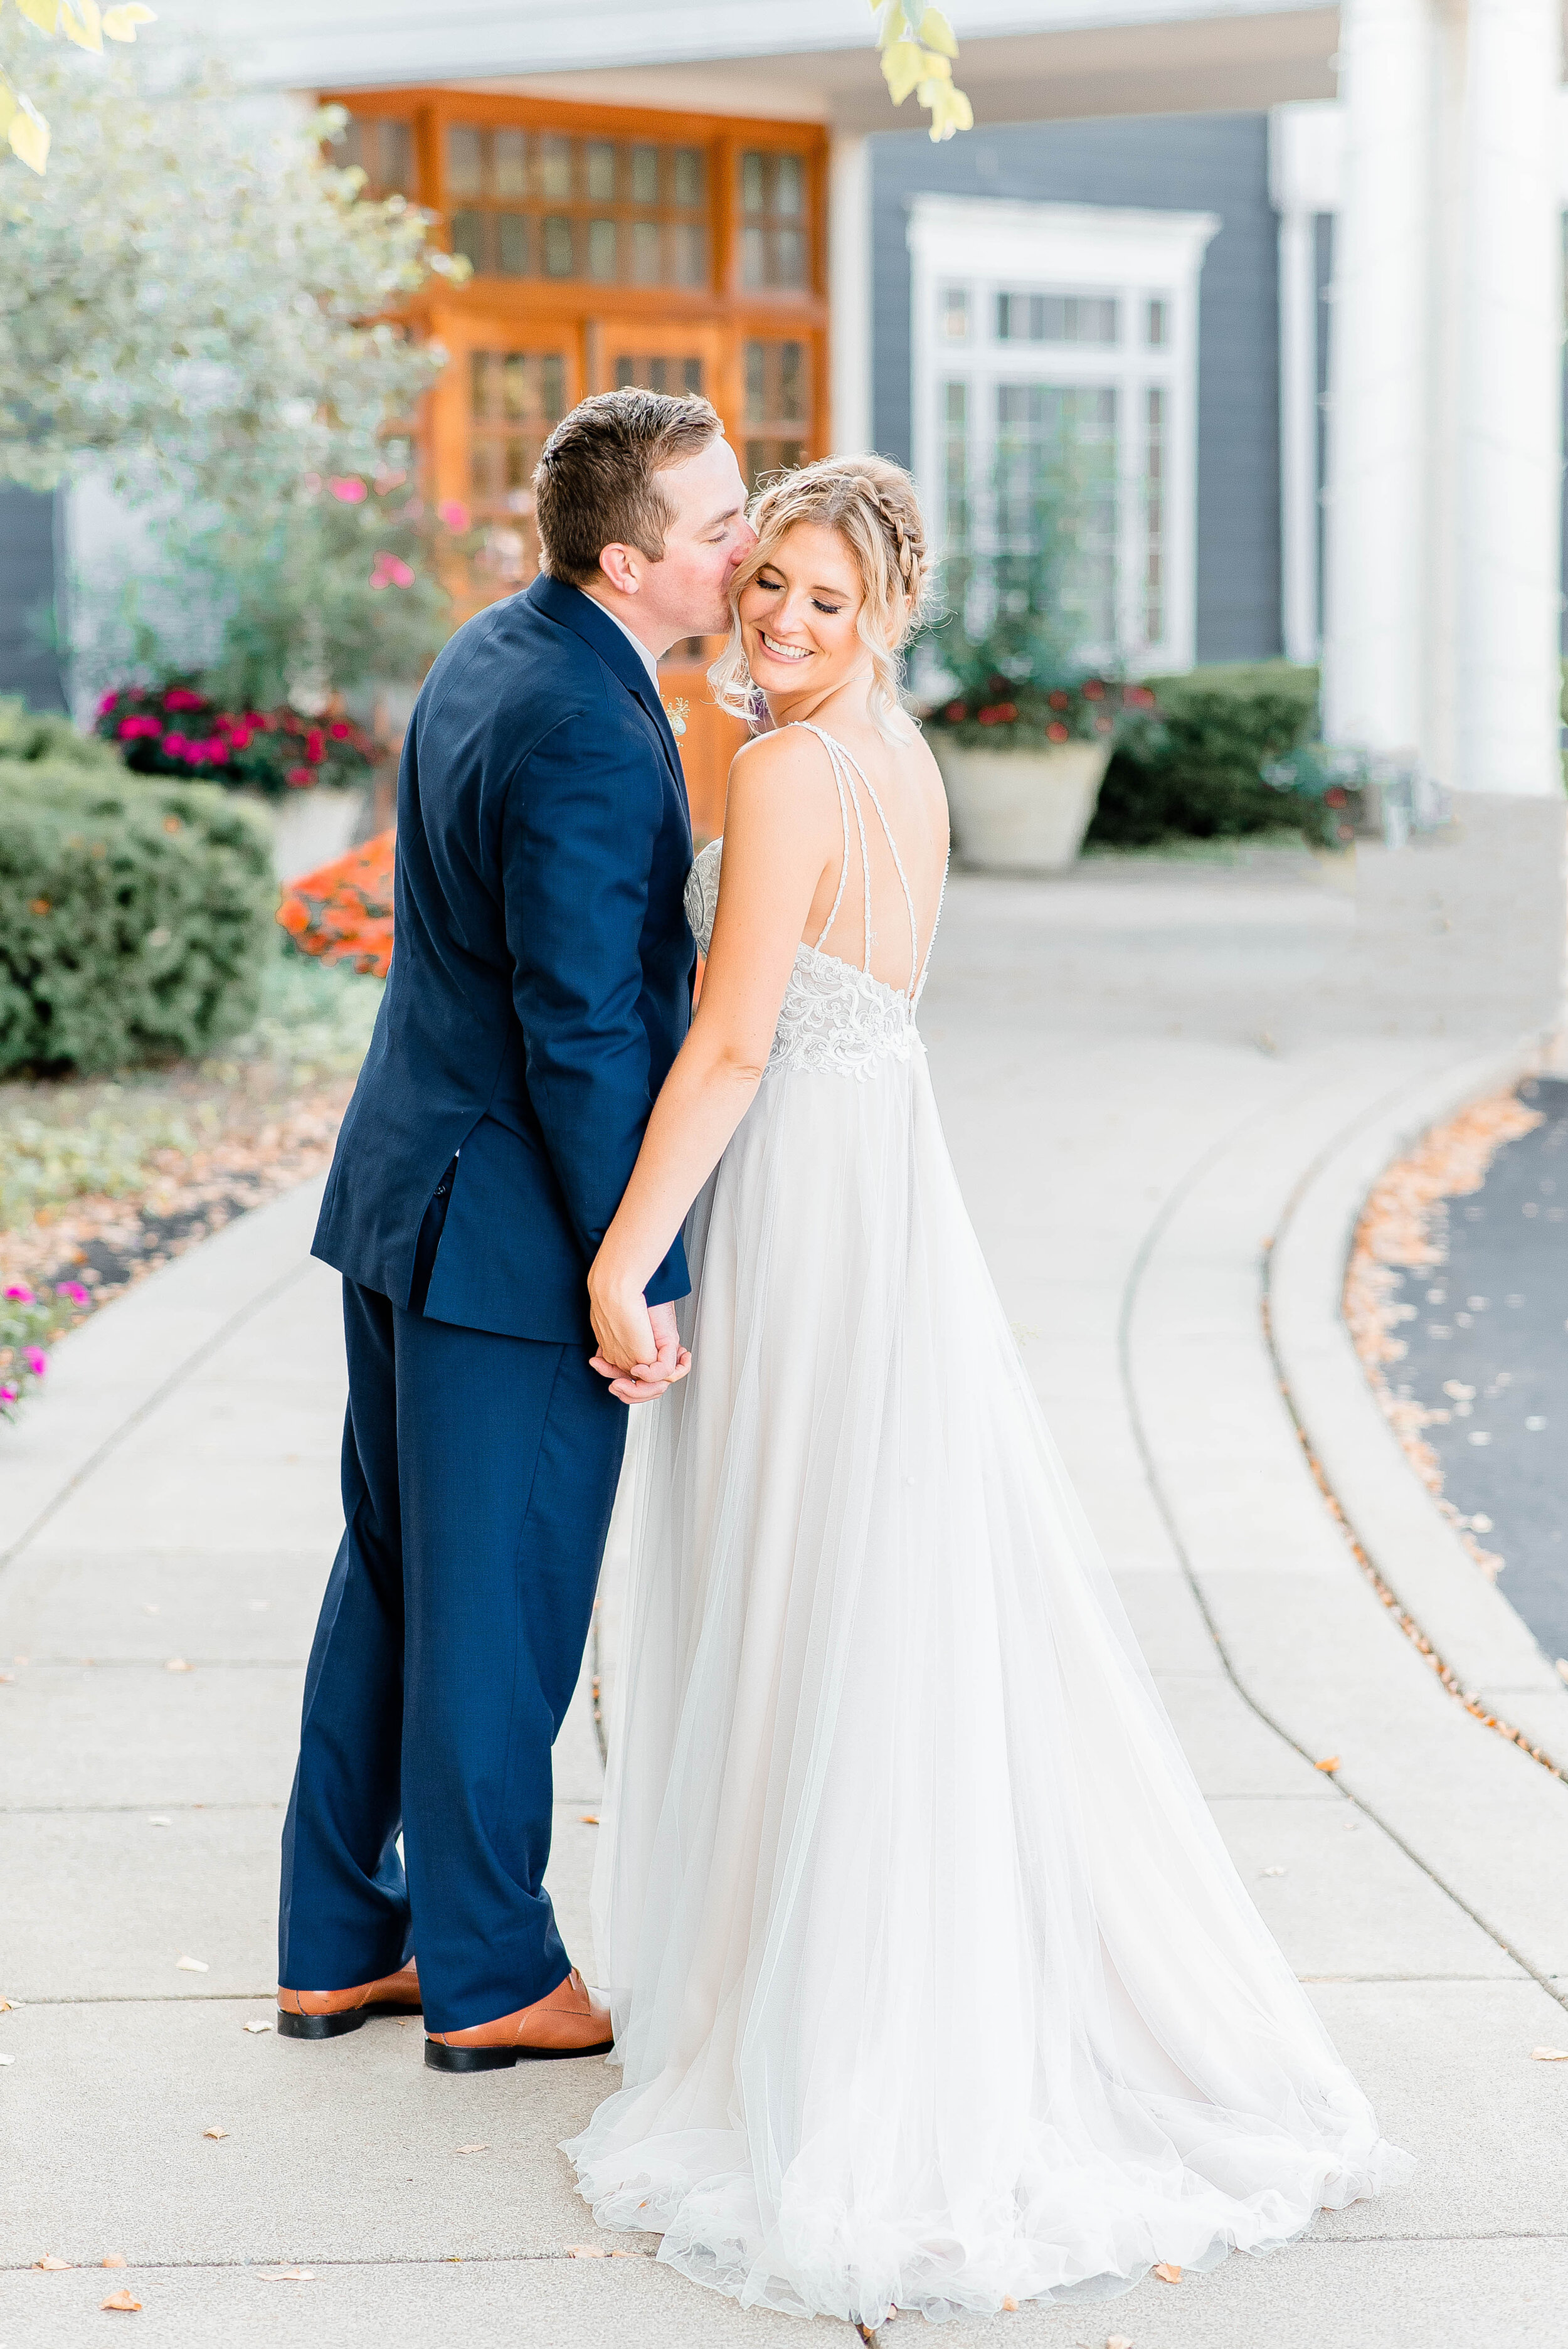 Jack & Alexis: Fishers, IN